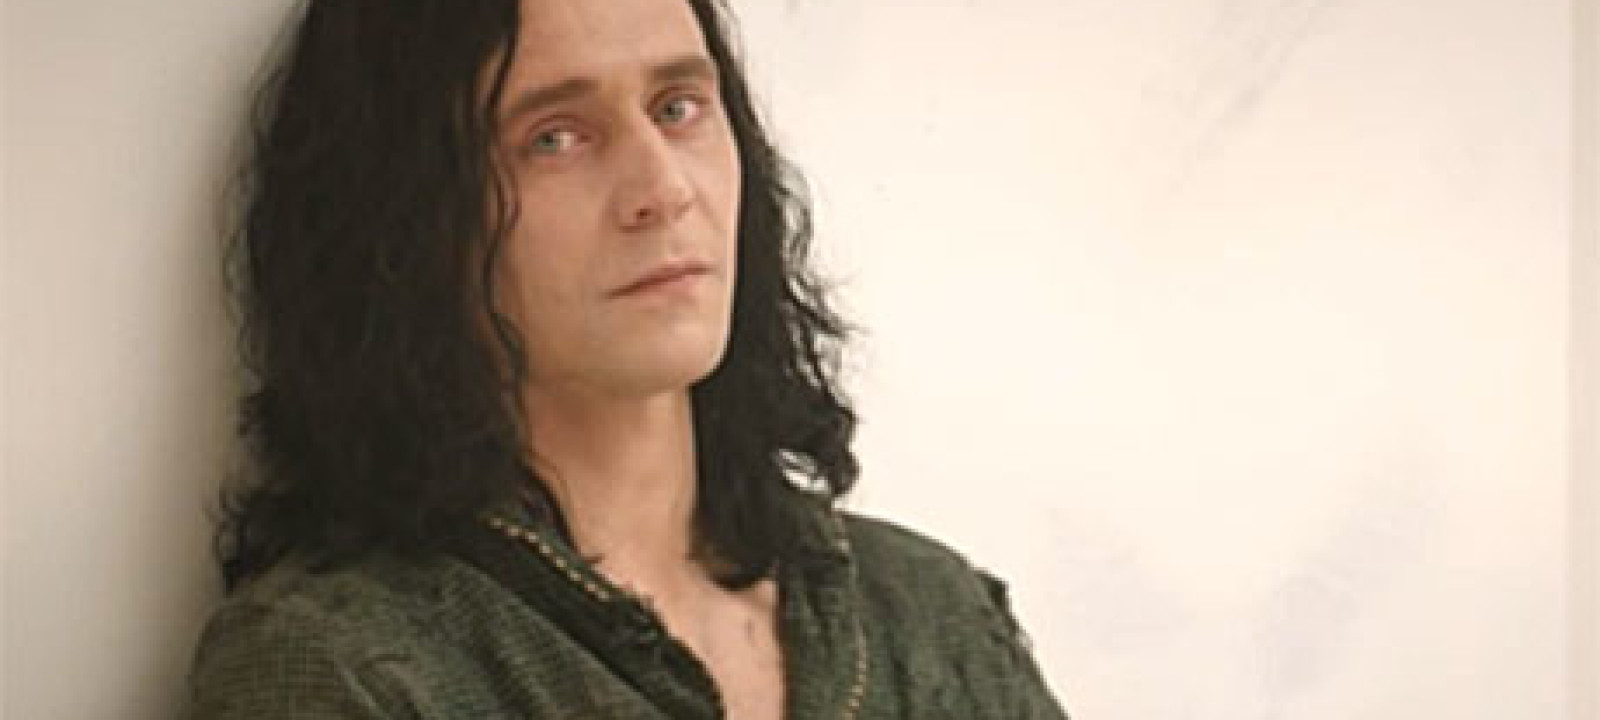 Tom Hiddleston as Loki in 'Thor 2: The Dark World'